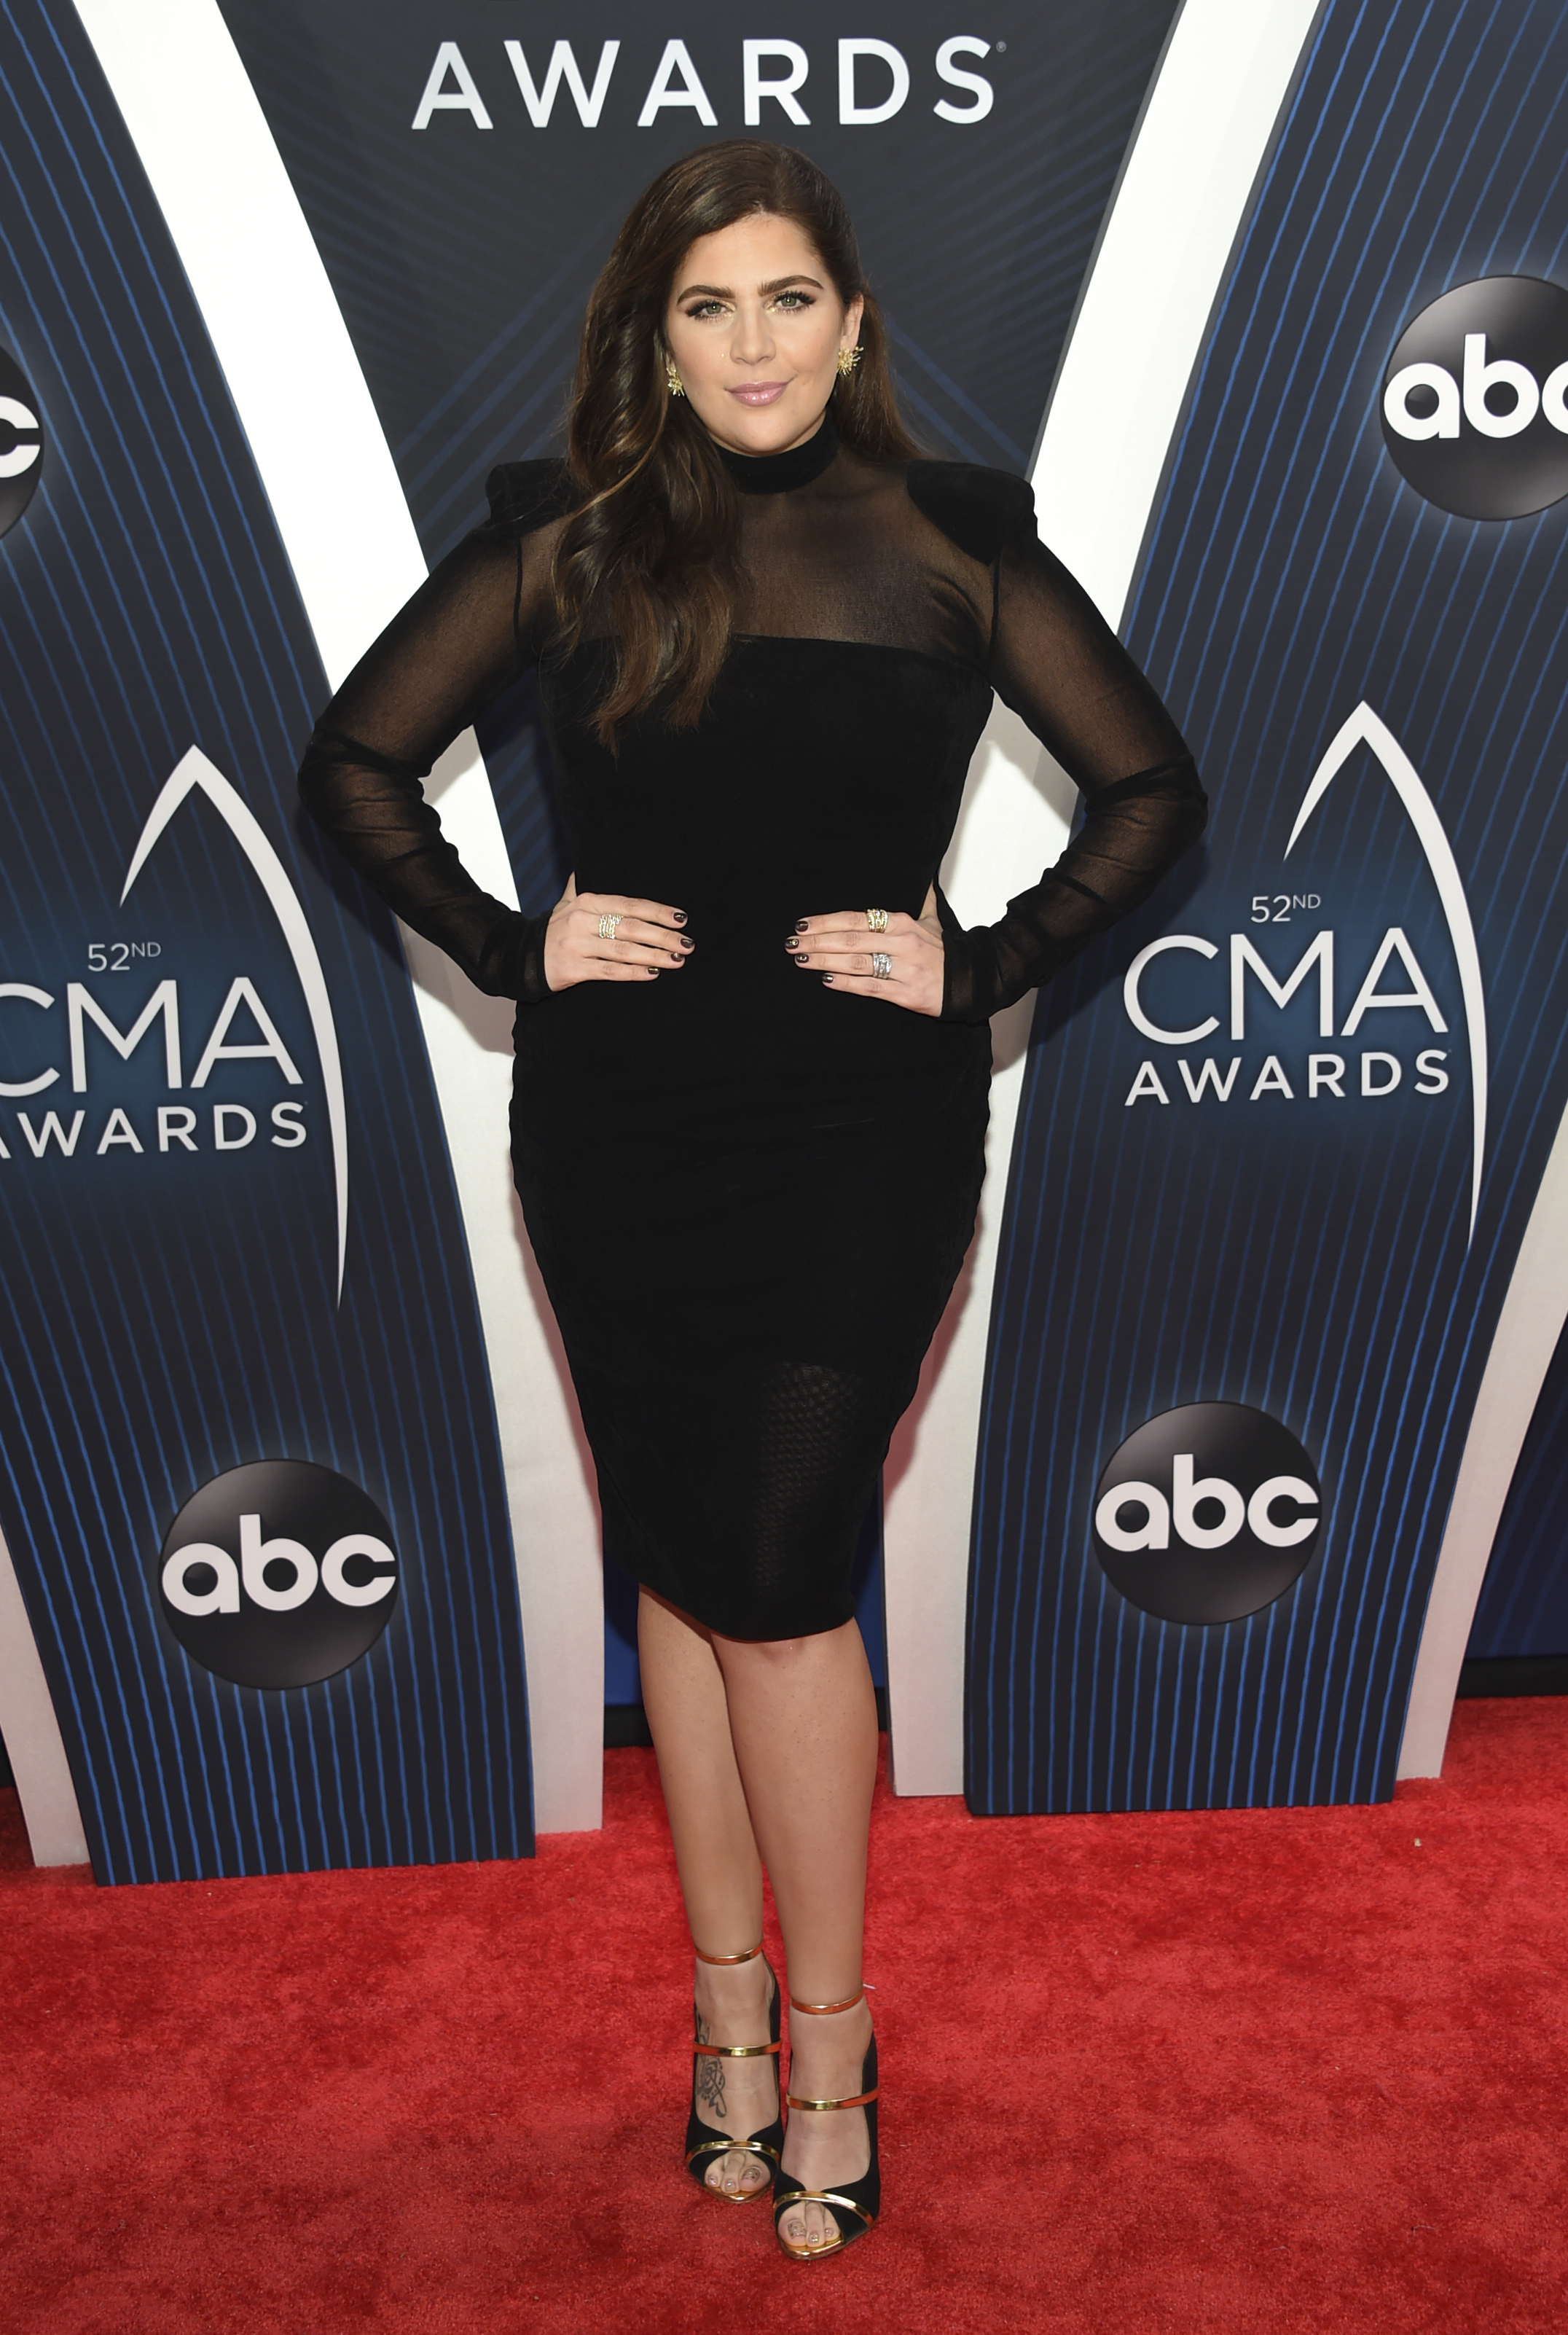 Cma Red Carpet 2018 Country Music Awards Red Carpet